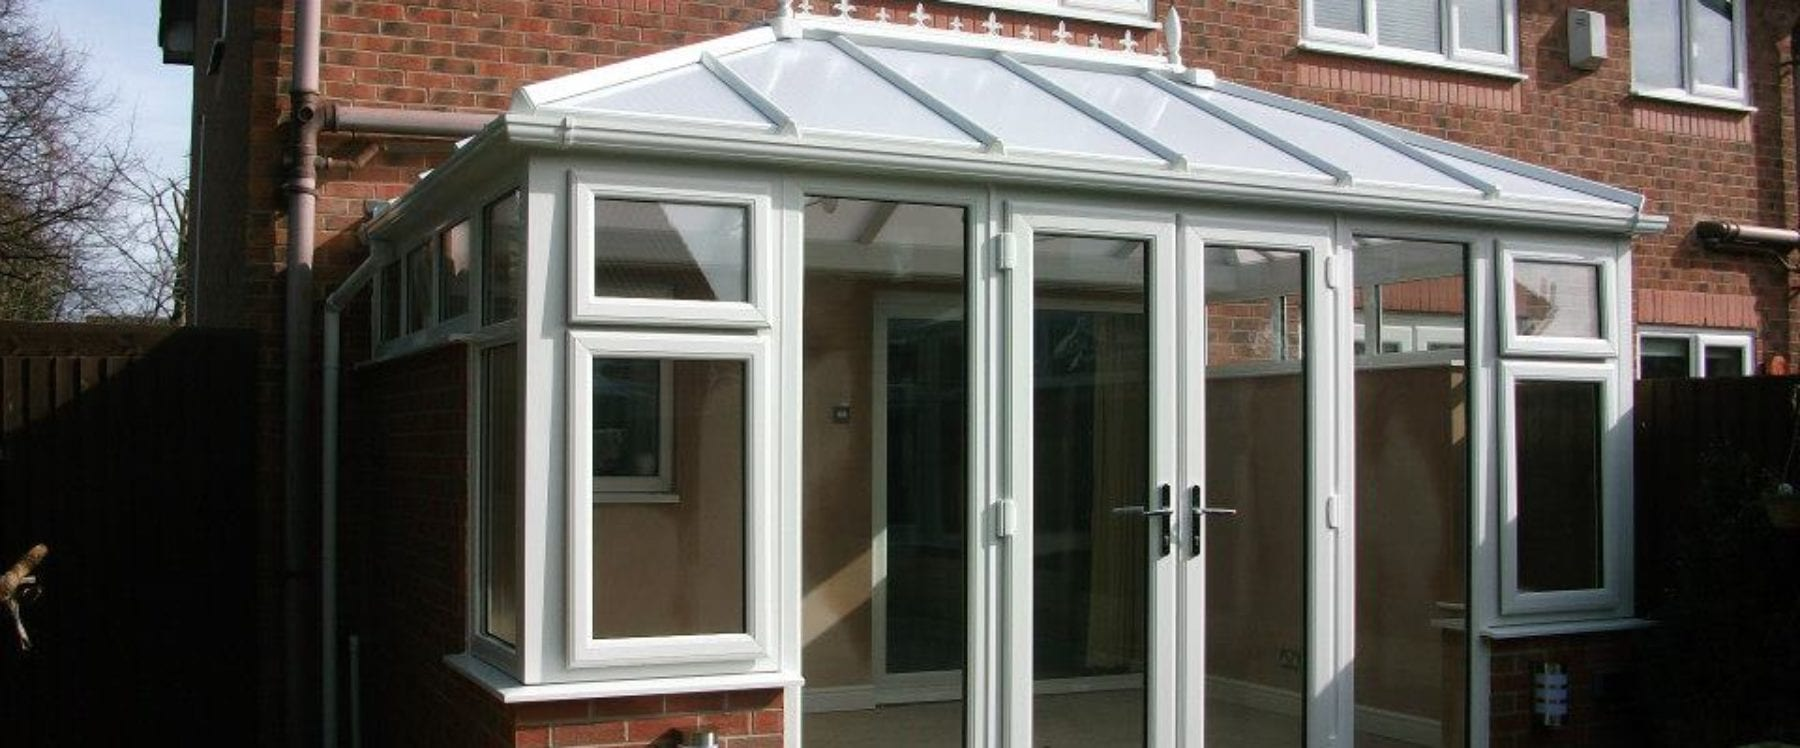 Single storey orangery home extension